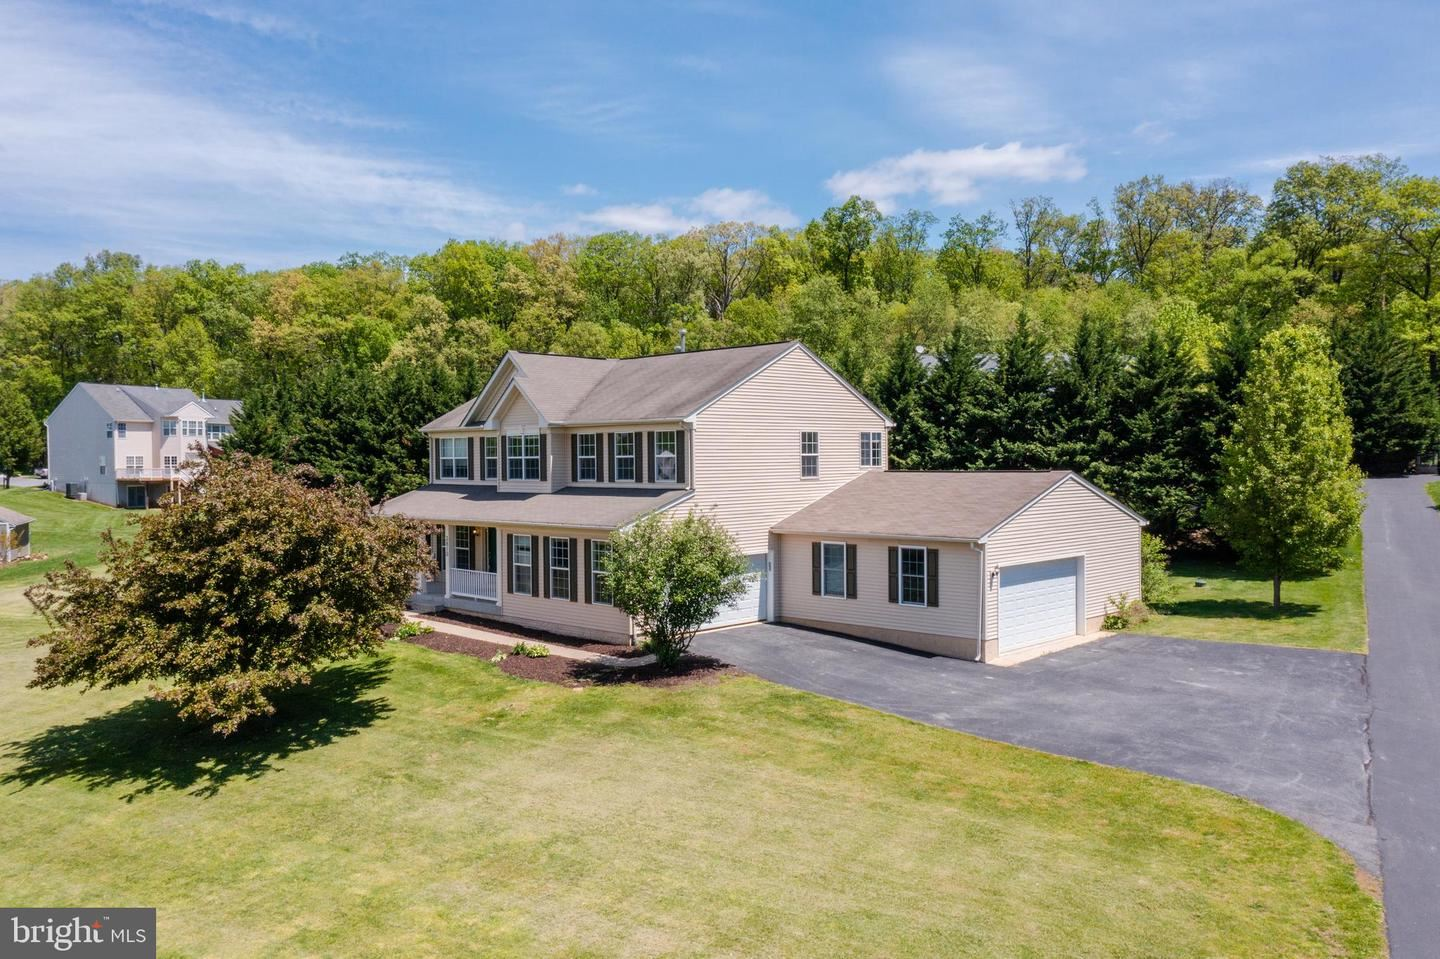 3810 SOFTWIND DR, Hampstead, MD 21074 - MLS#: MDCR204010